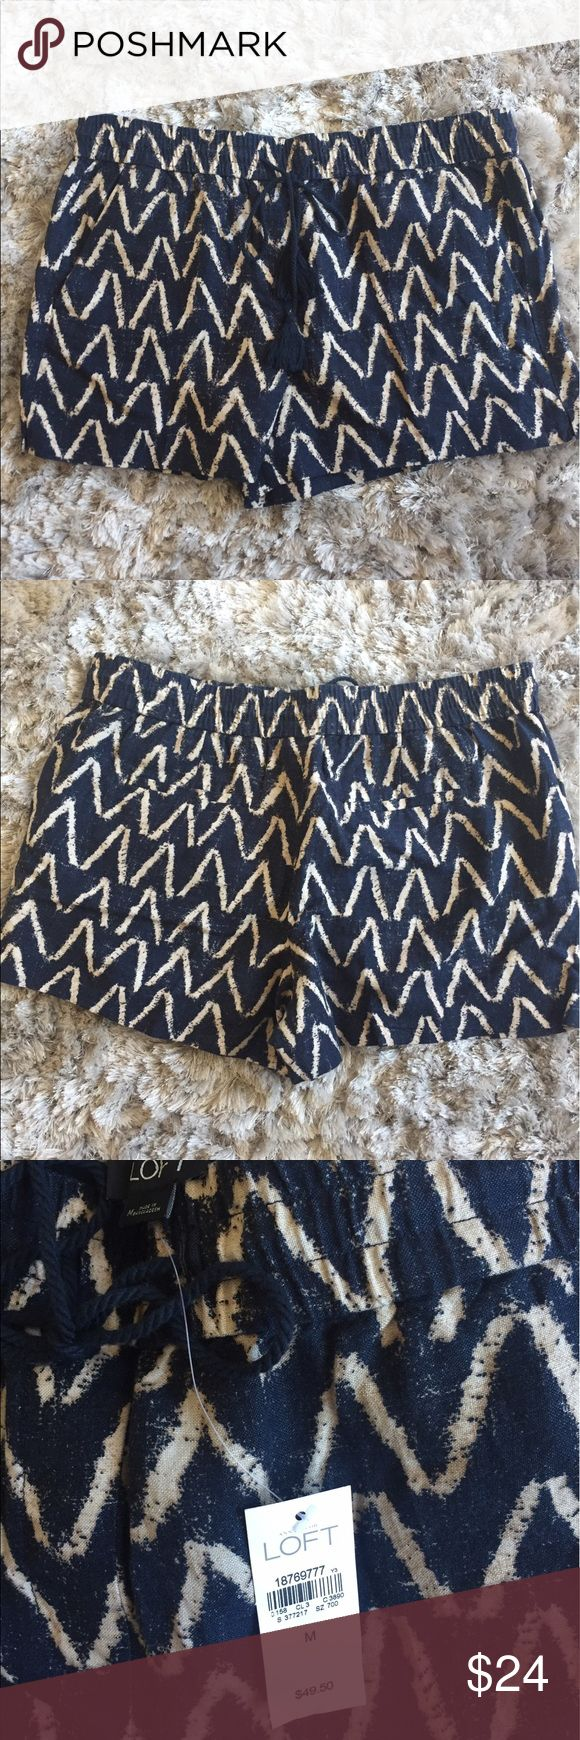 Women's LOFT Zig Zag Shorts Soft, cute, and cozy shorts from Ann Taylor LOFT. Dark blue color with cream/tan zig zag pattern. Has pockets and a drawstring waist with tassels. 4in inseam. LOFT Shorts